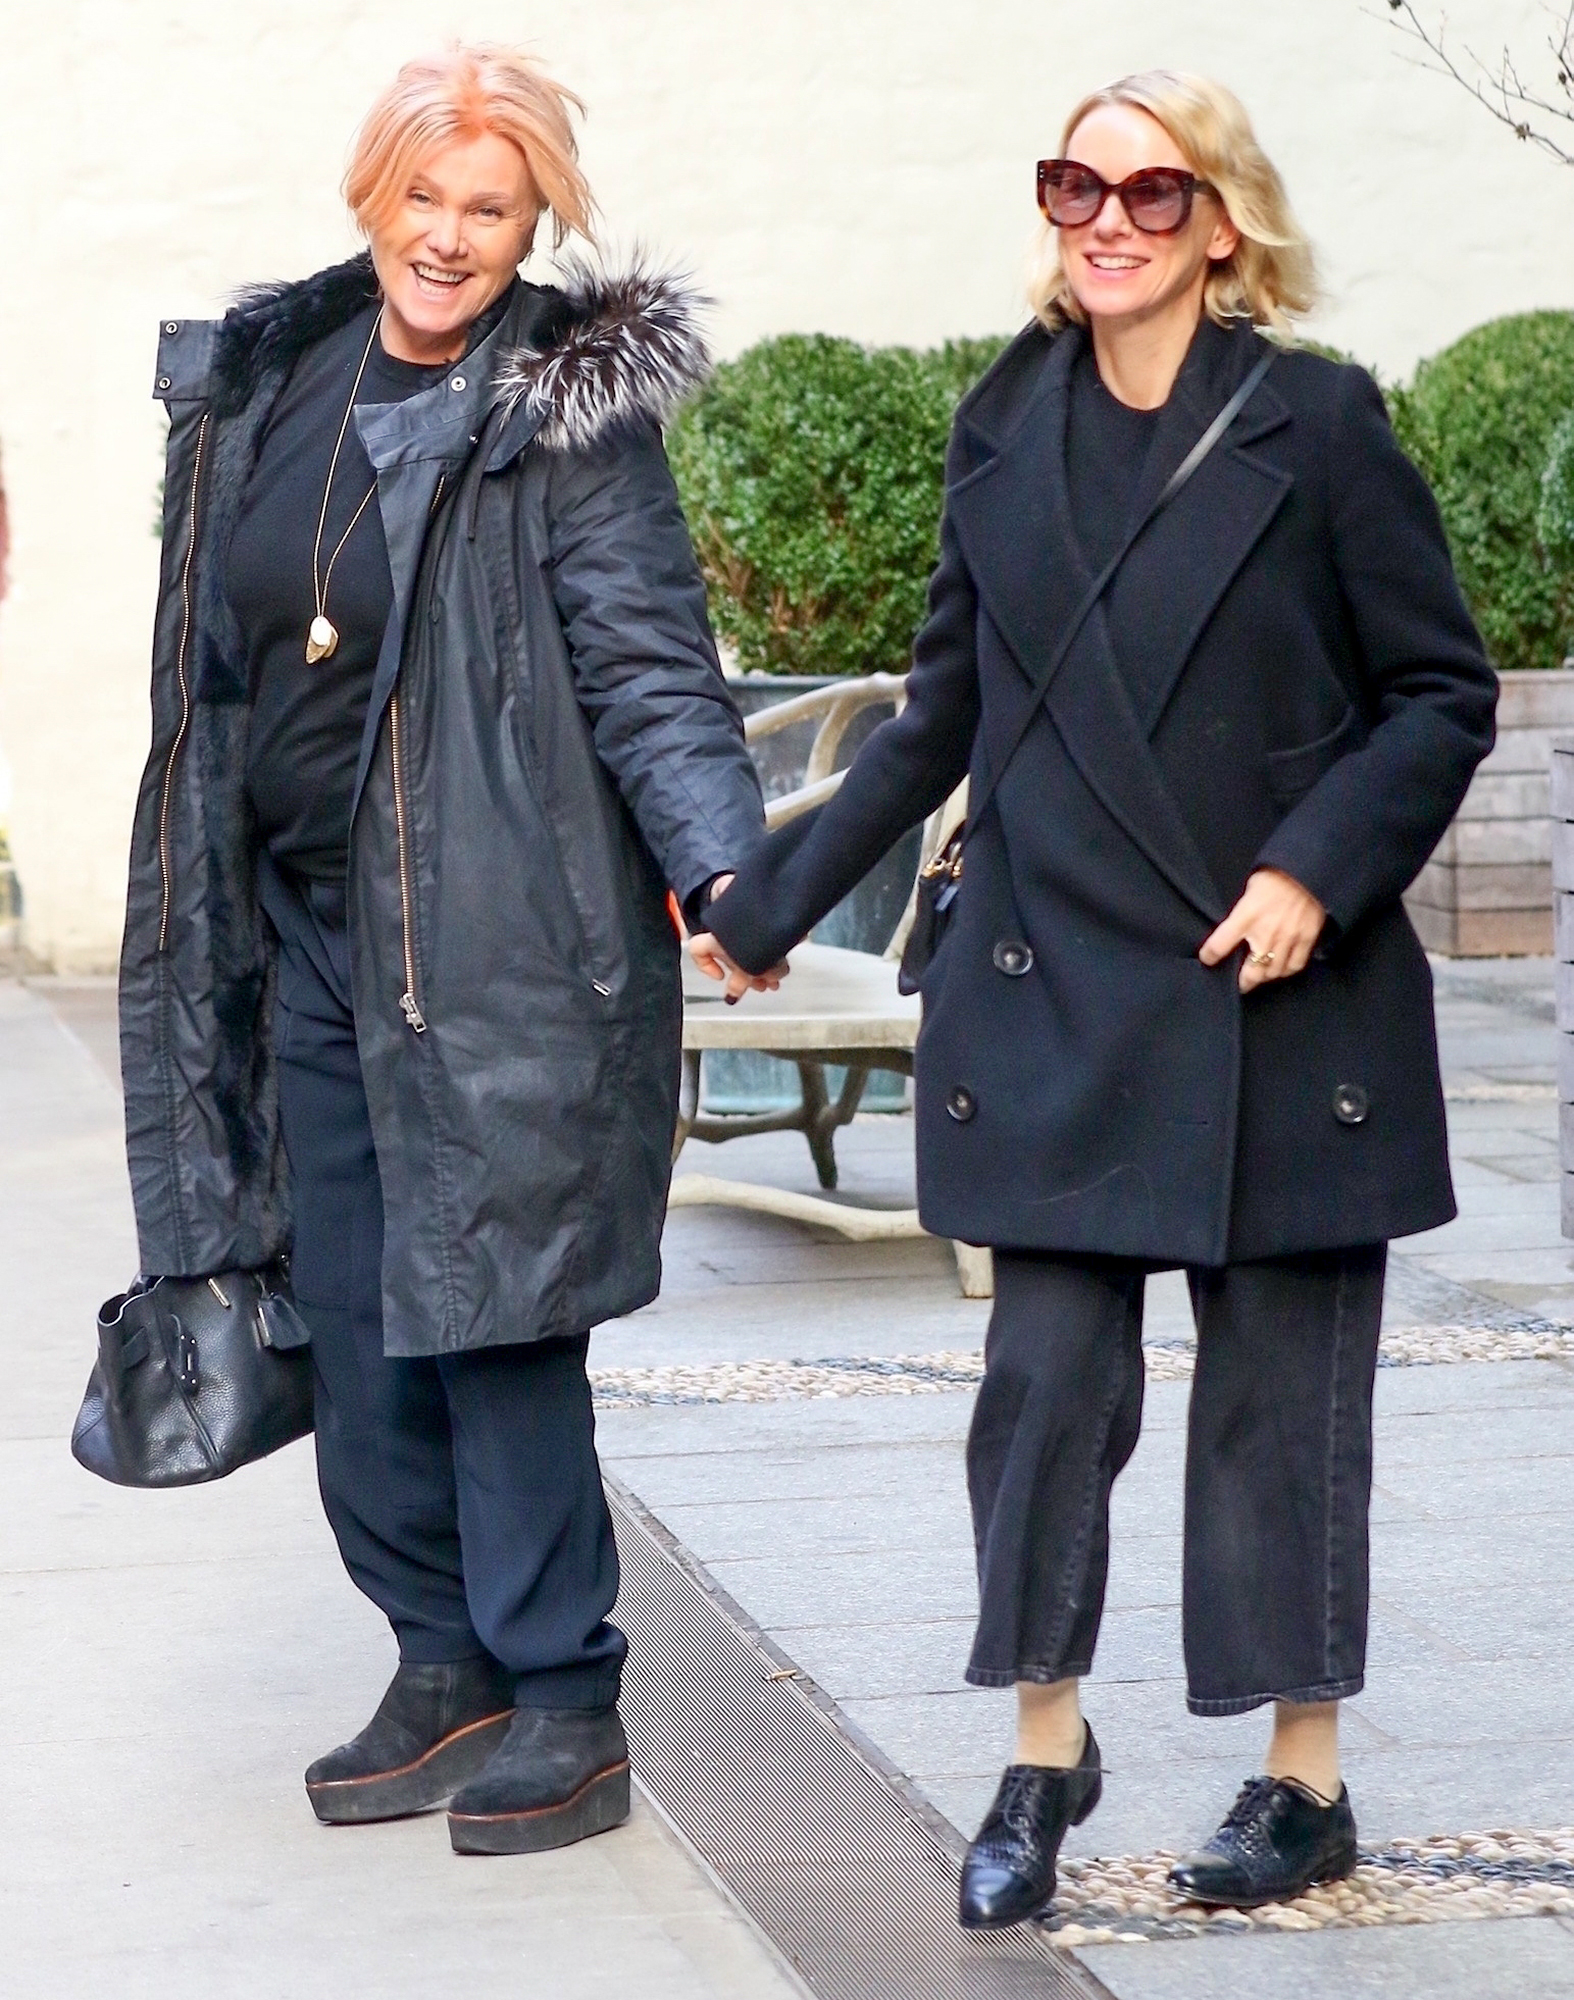 *EXCLUSIVE* Naomi Watts and Deborra-lee Furness have an all Australian Lunch in Soho